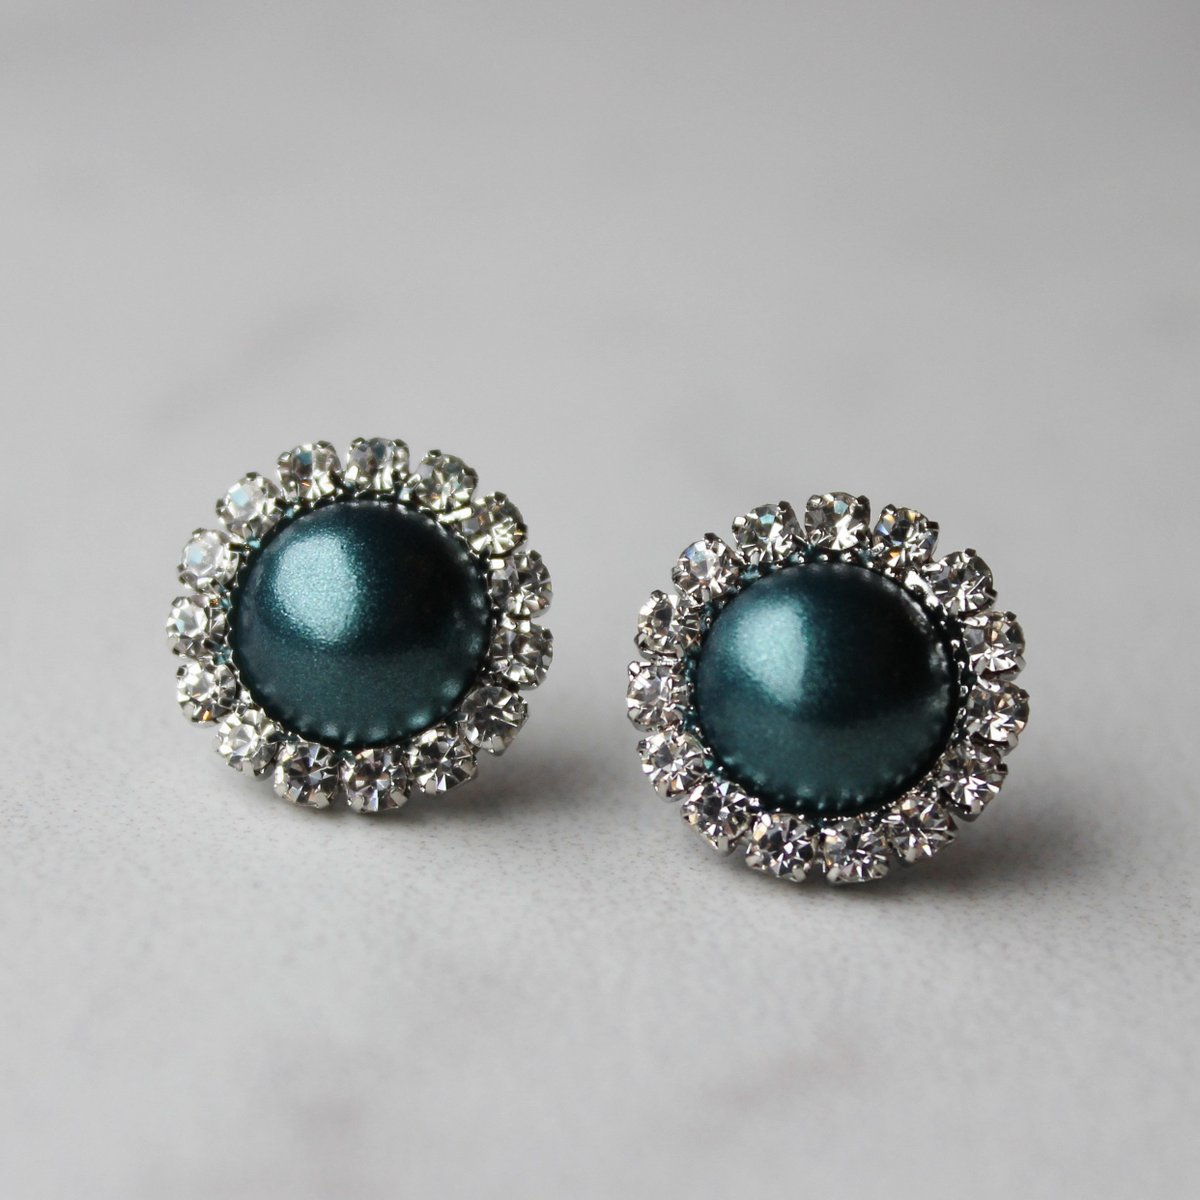 Teal Green Pearl Earrings, Teal Green Bridesmaid Earrings, Teal Green Jewelry, Gift for Bridesmaids, Pine Green, Dark Green Jewelry  #style #smallbiz #shopsmall #etsyshop #shopping #gifts #etsy #ecommerce